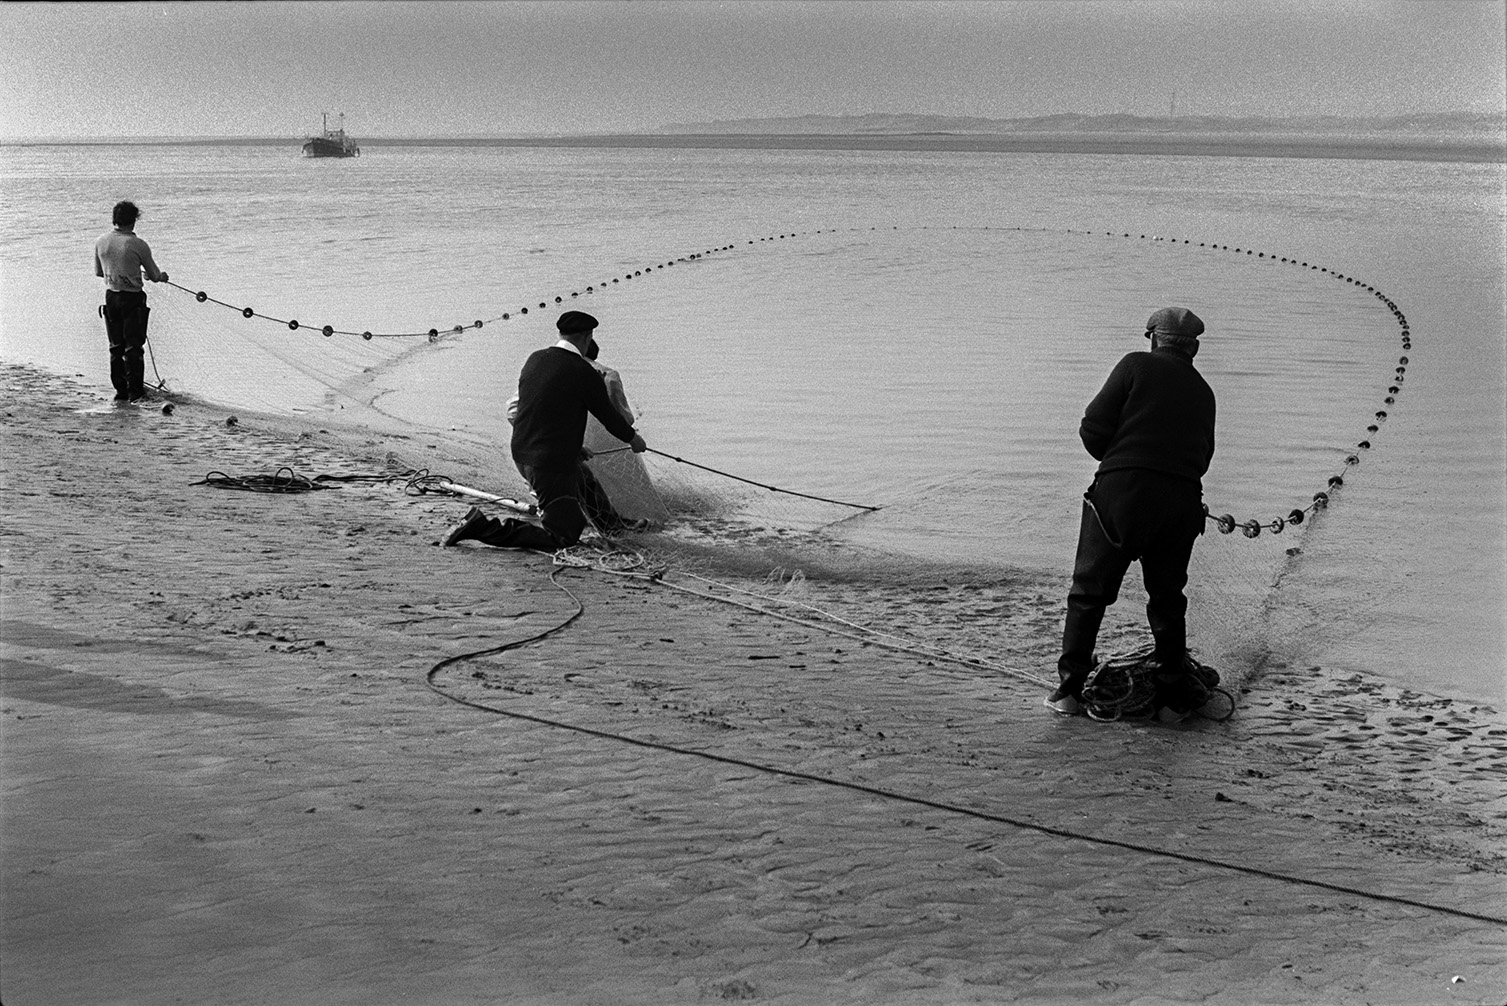 Men netting salmon on the beach front at Appledore. A ship can be seen in the background.